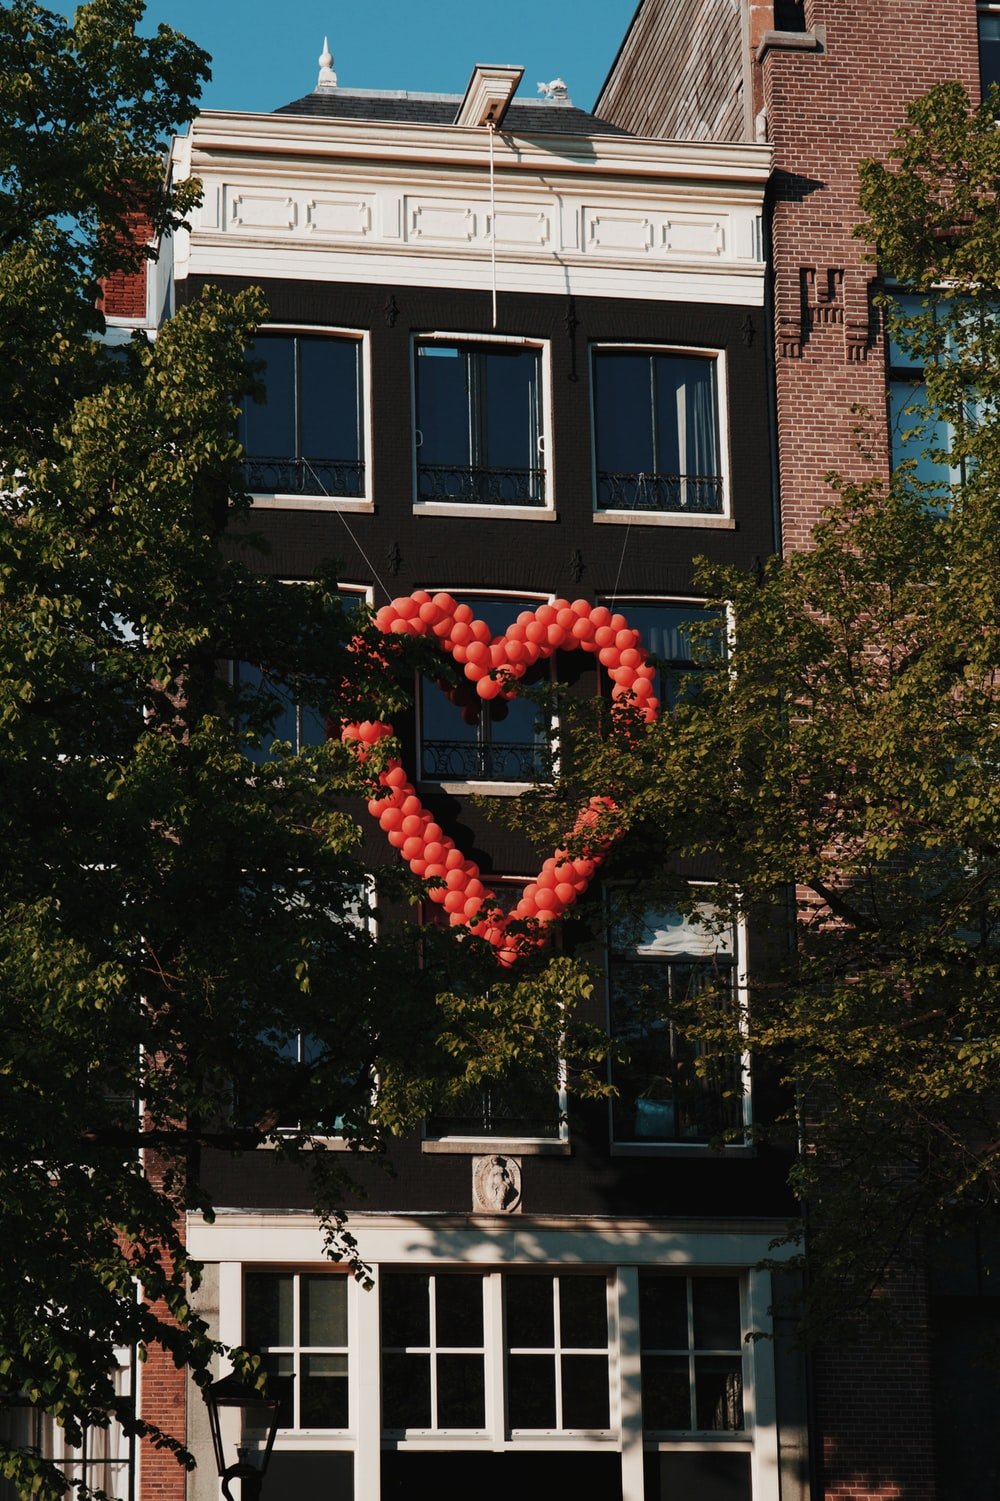 red heart shaped balloons on tree